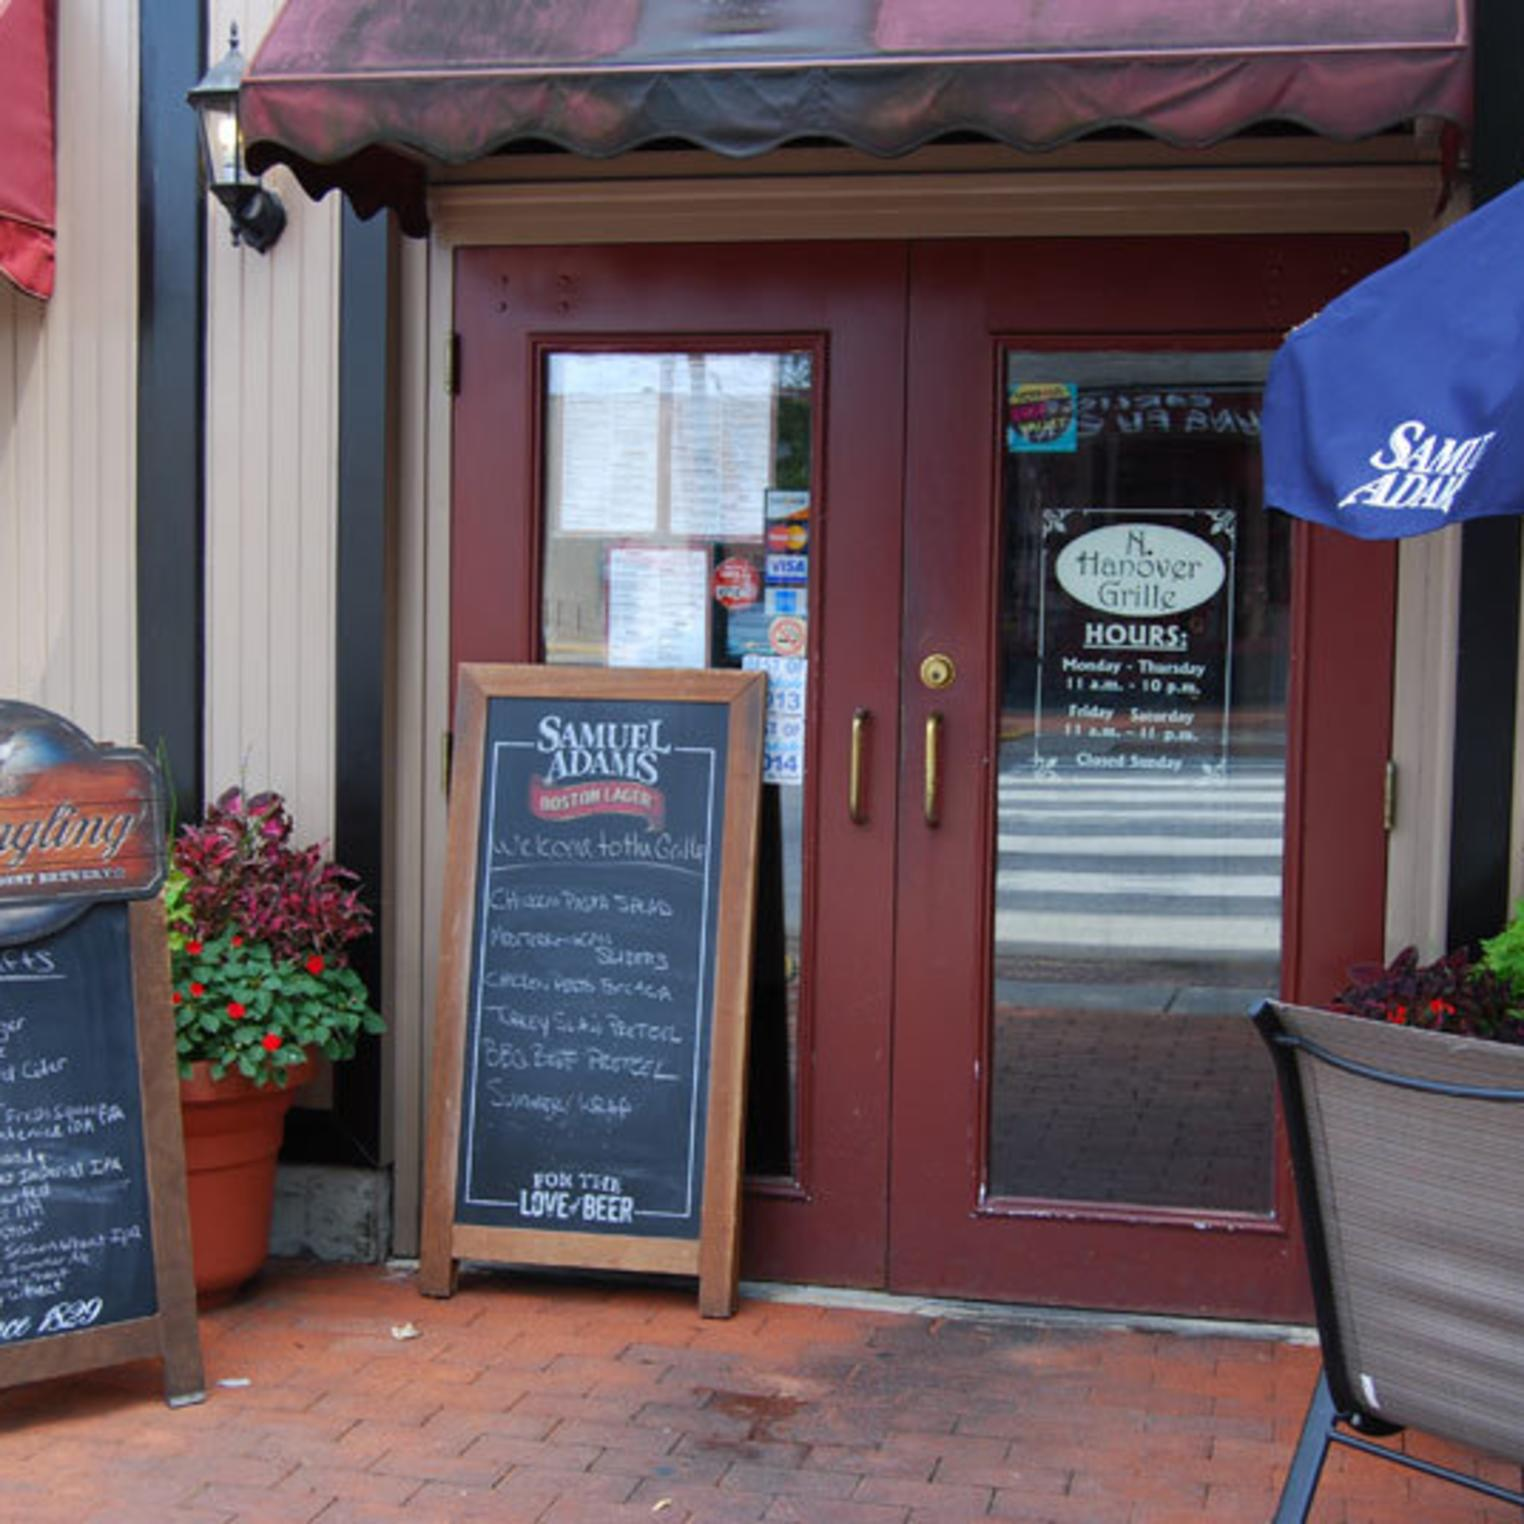 North Hanover Grille